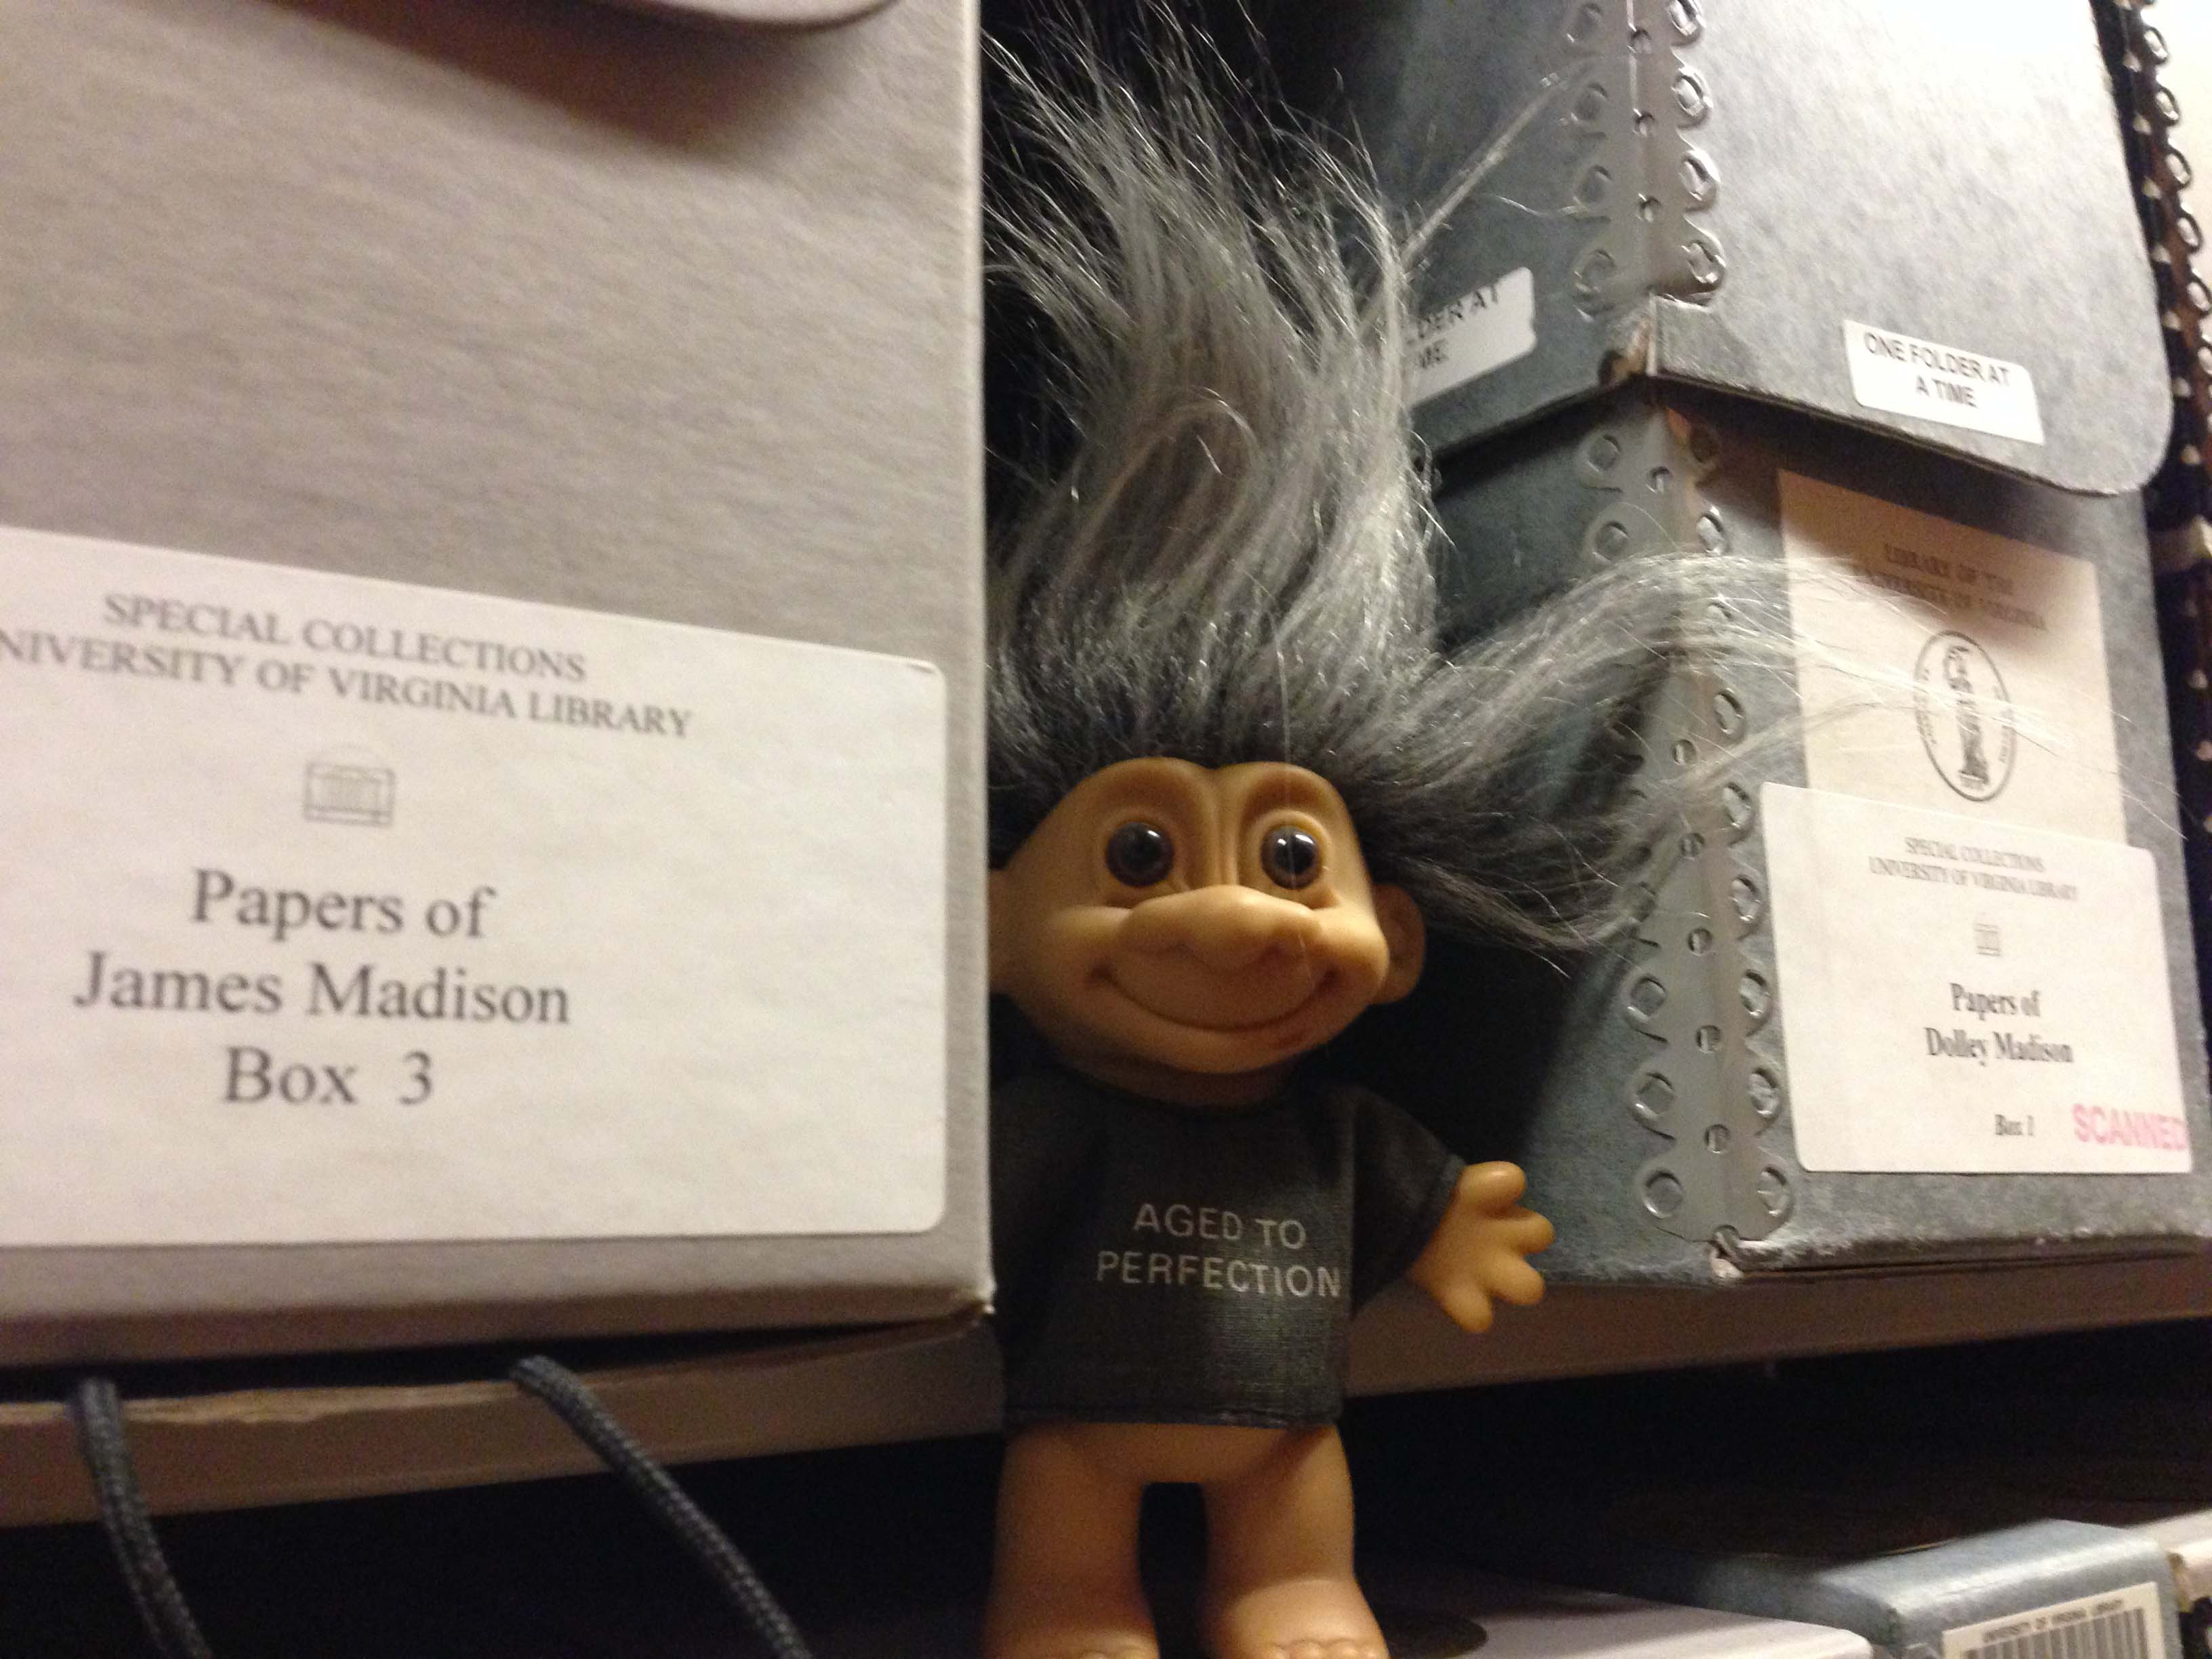 Since Tiffany's arrival we've experienced a sharp uptick in troll sightings in the stacks. Fortunately, trolls produce no threat to collection materials, but we are monitoring the situation just in case.